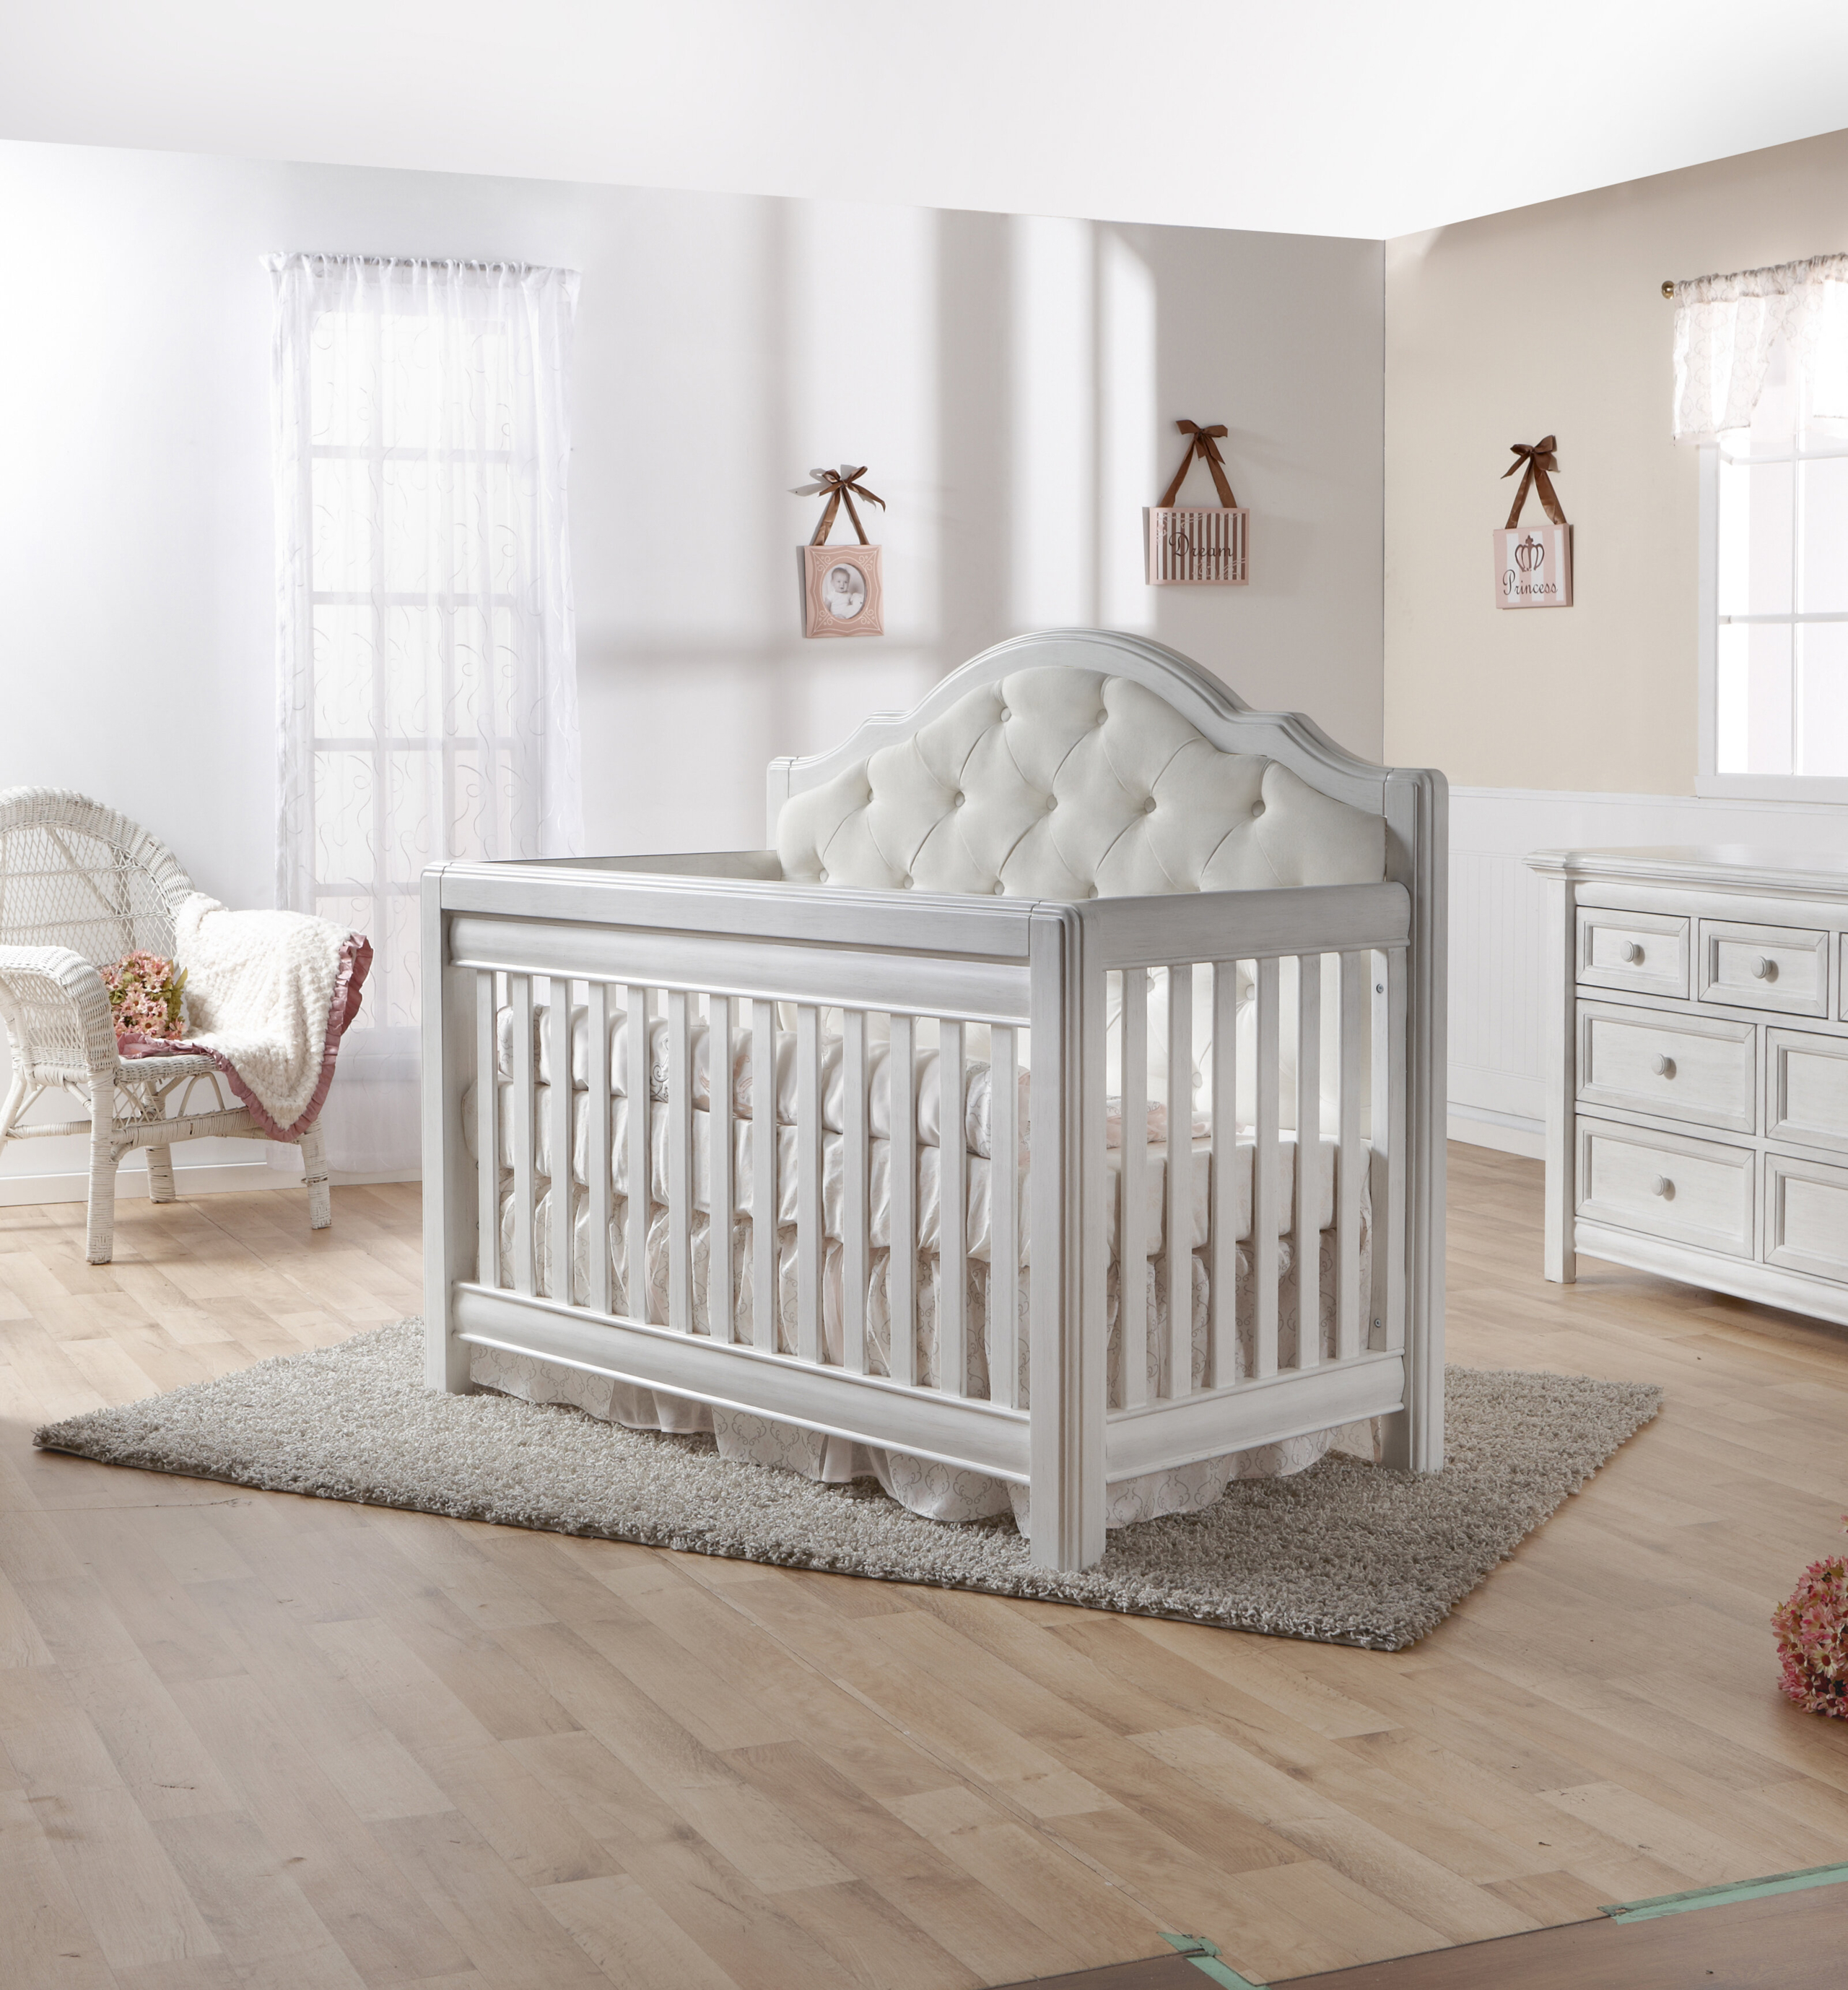 50+ Vintage Baby Crib You'll Love in 2020 - Visual Hunt